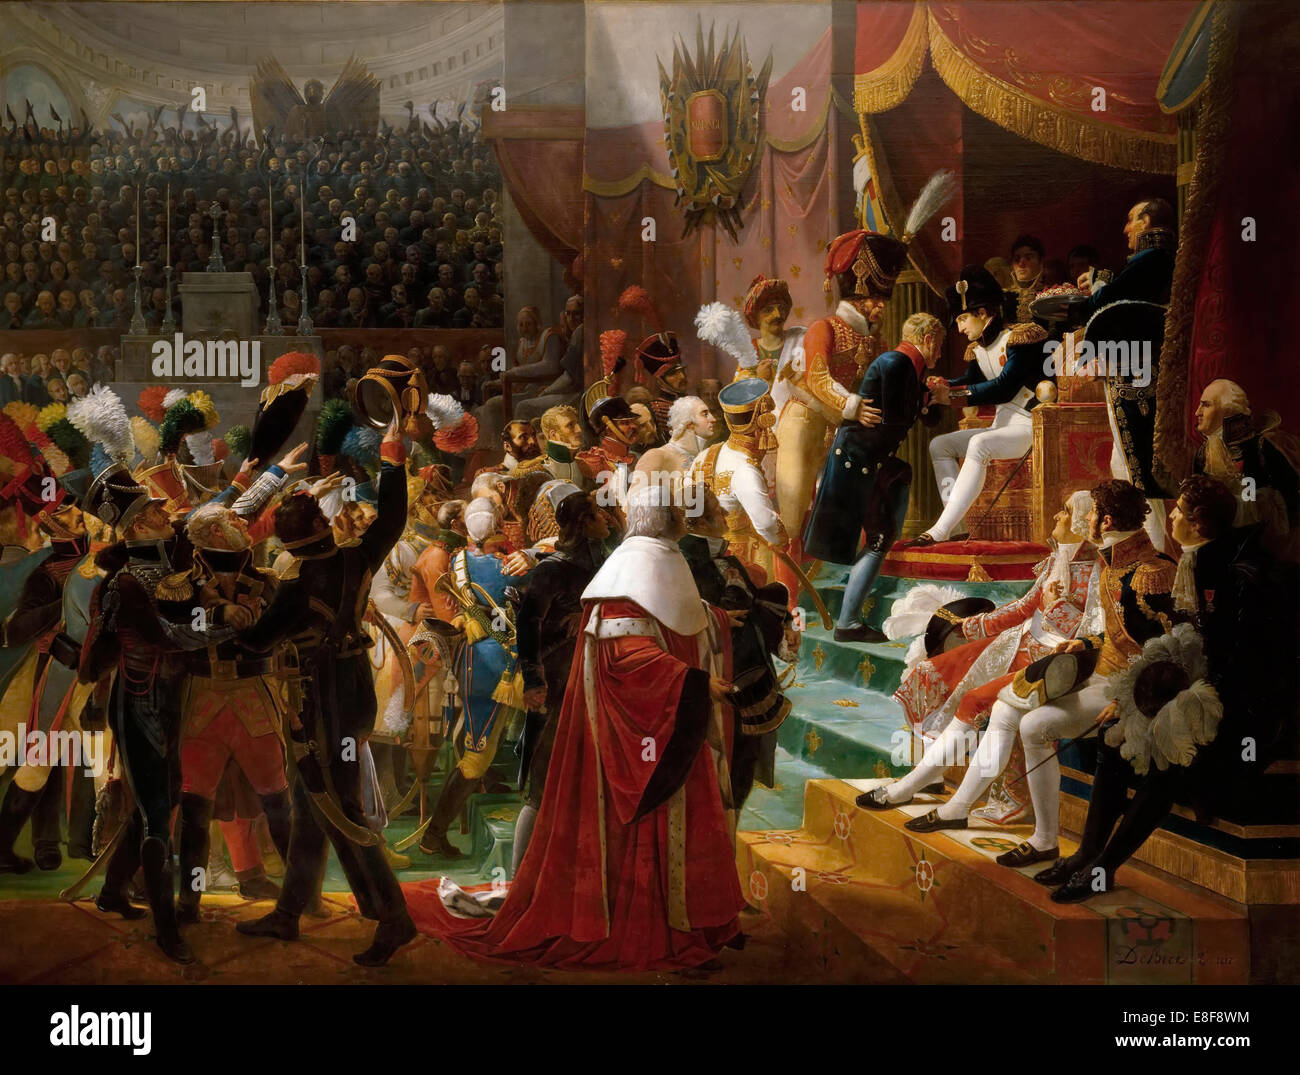 First remittance of the Legion of Honour, 15 July 1804, at Saint-Louis des Invalides. Artist: Debret, Jean-Baptiste - Stock Image